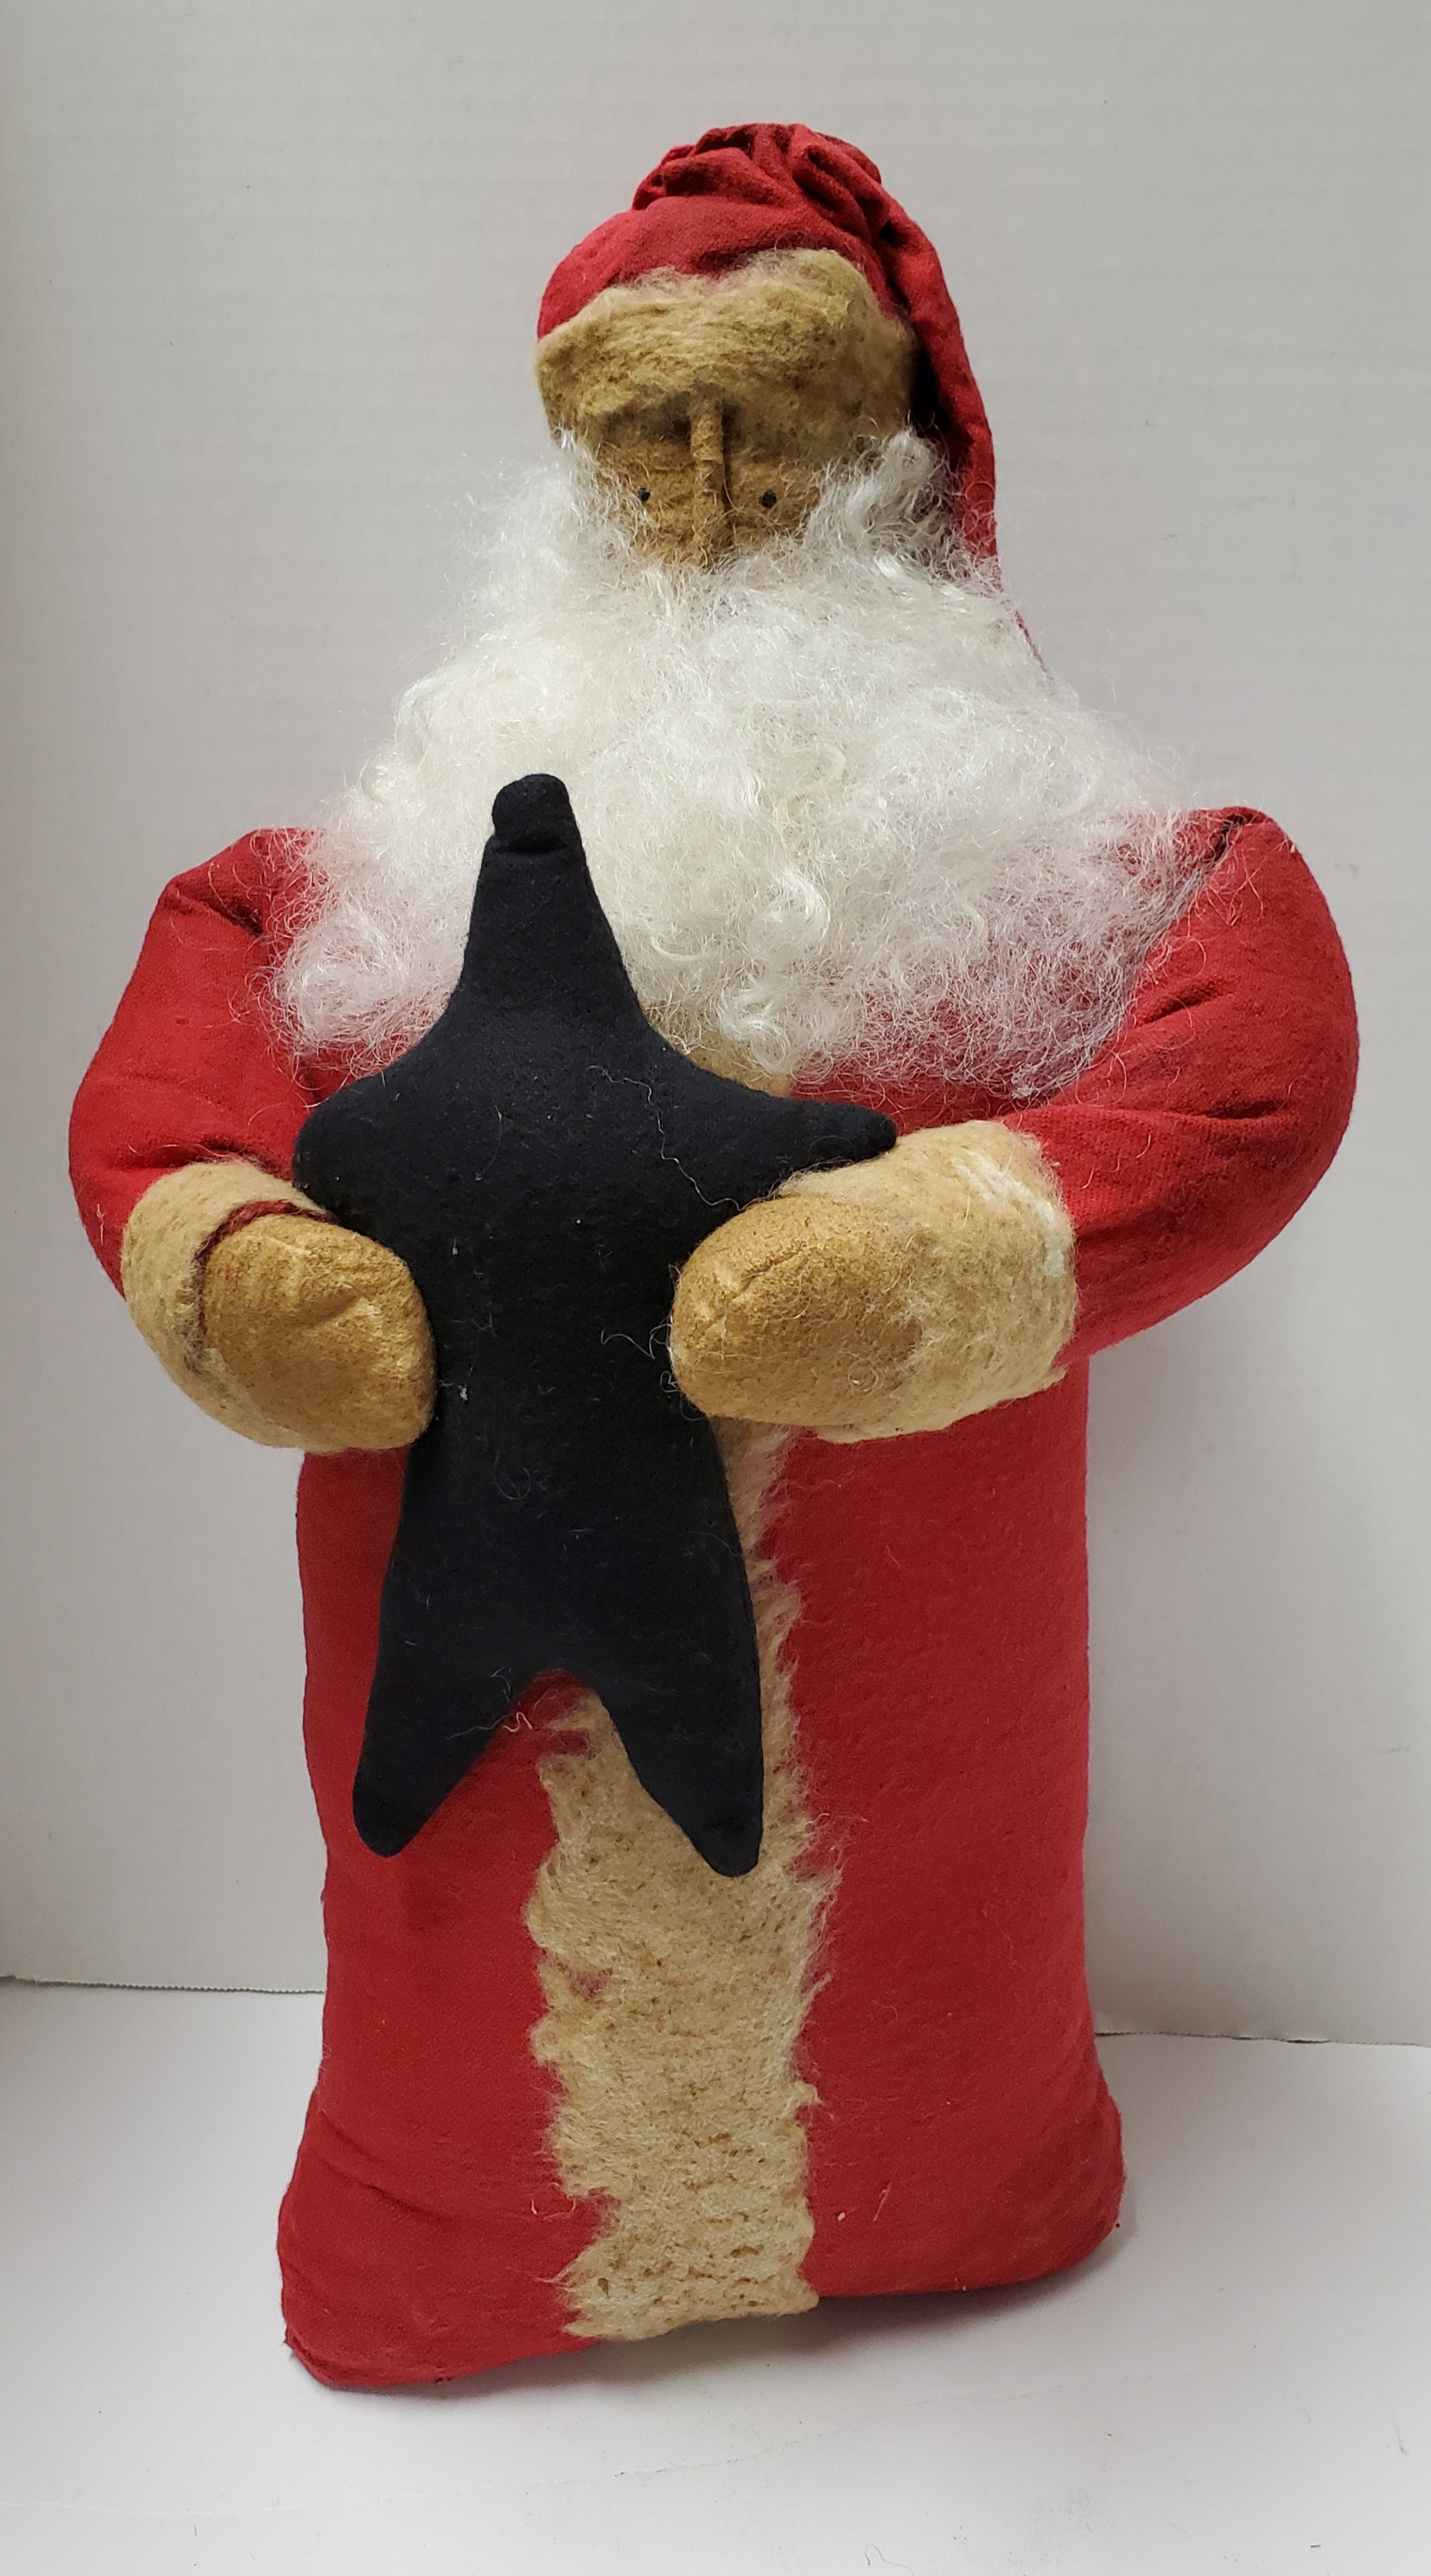 SANTA WITH RED COAT AND CAP HOLDING BLACK STAR